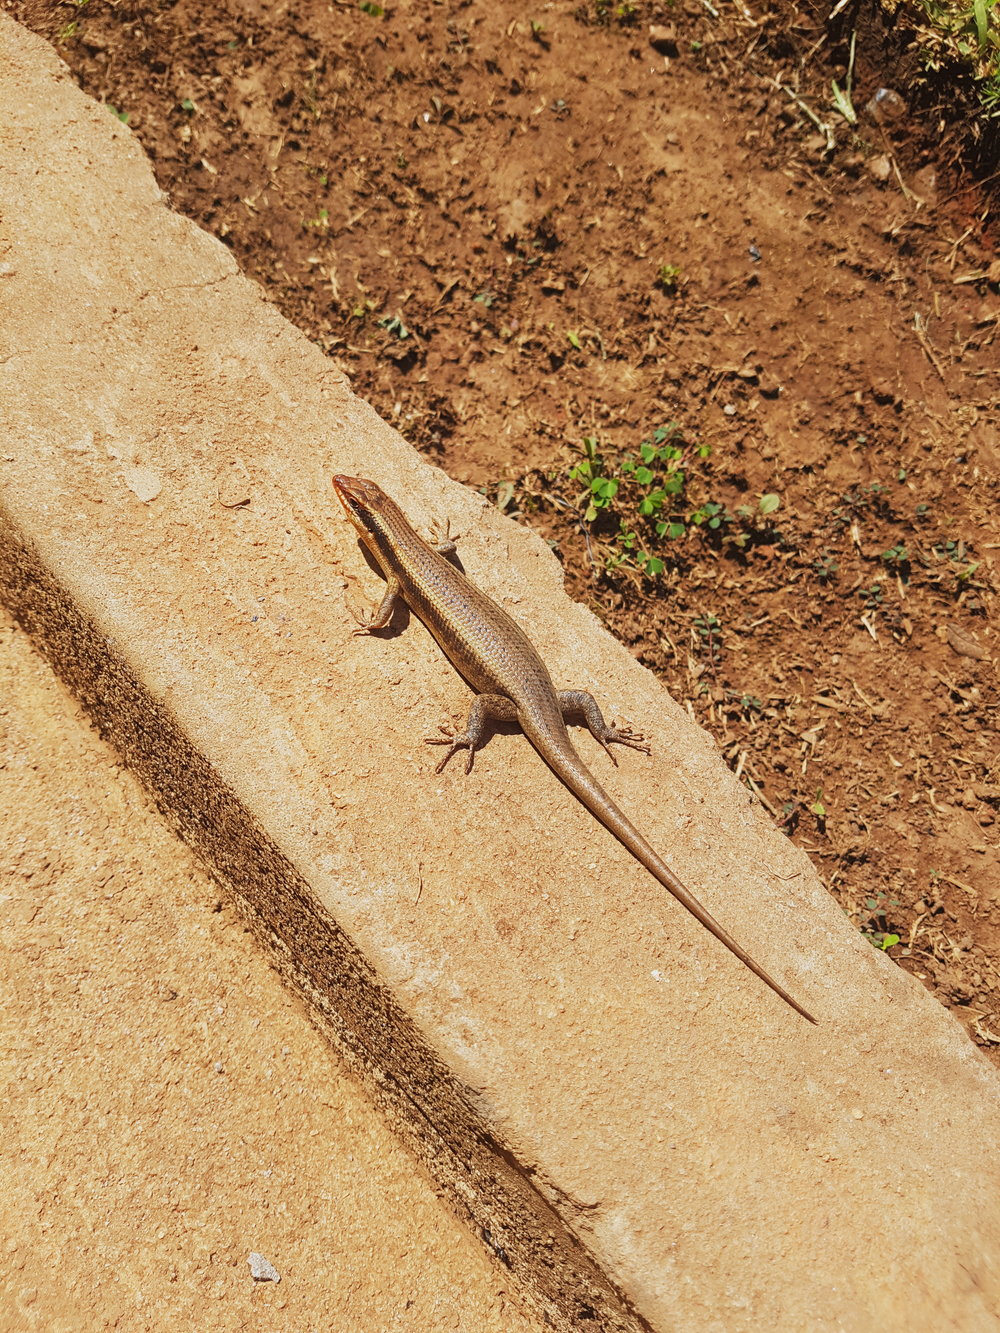 Groovy Little Lizard - It seems to enjoy sunning itself in my front yard. This photo was just a quick snap with my phone's camera.